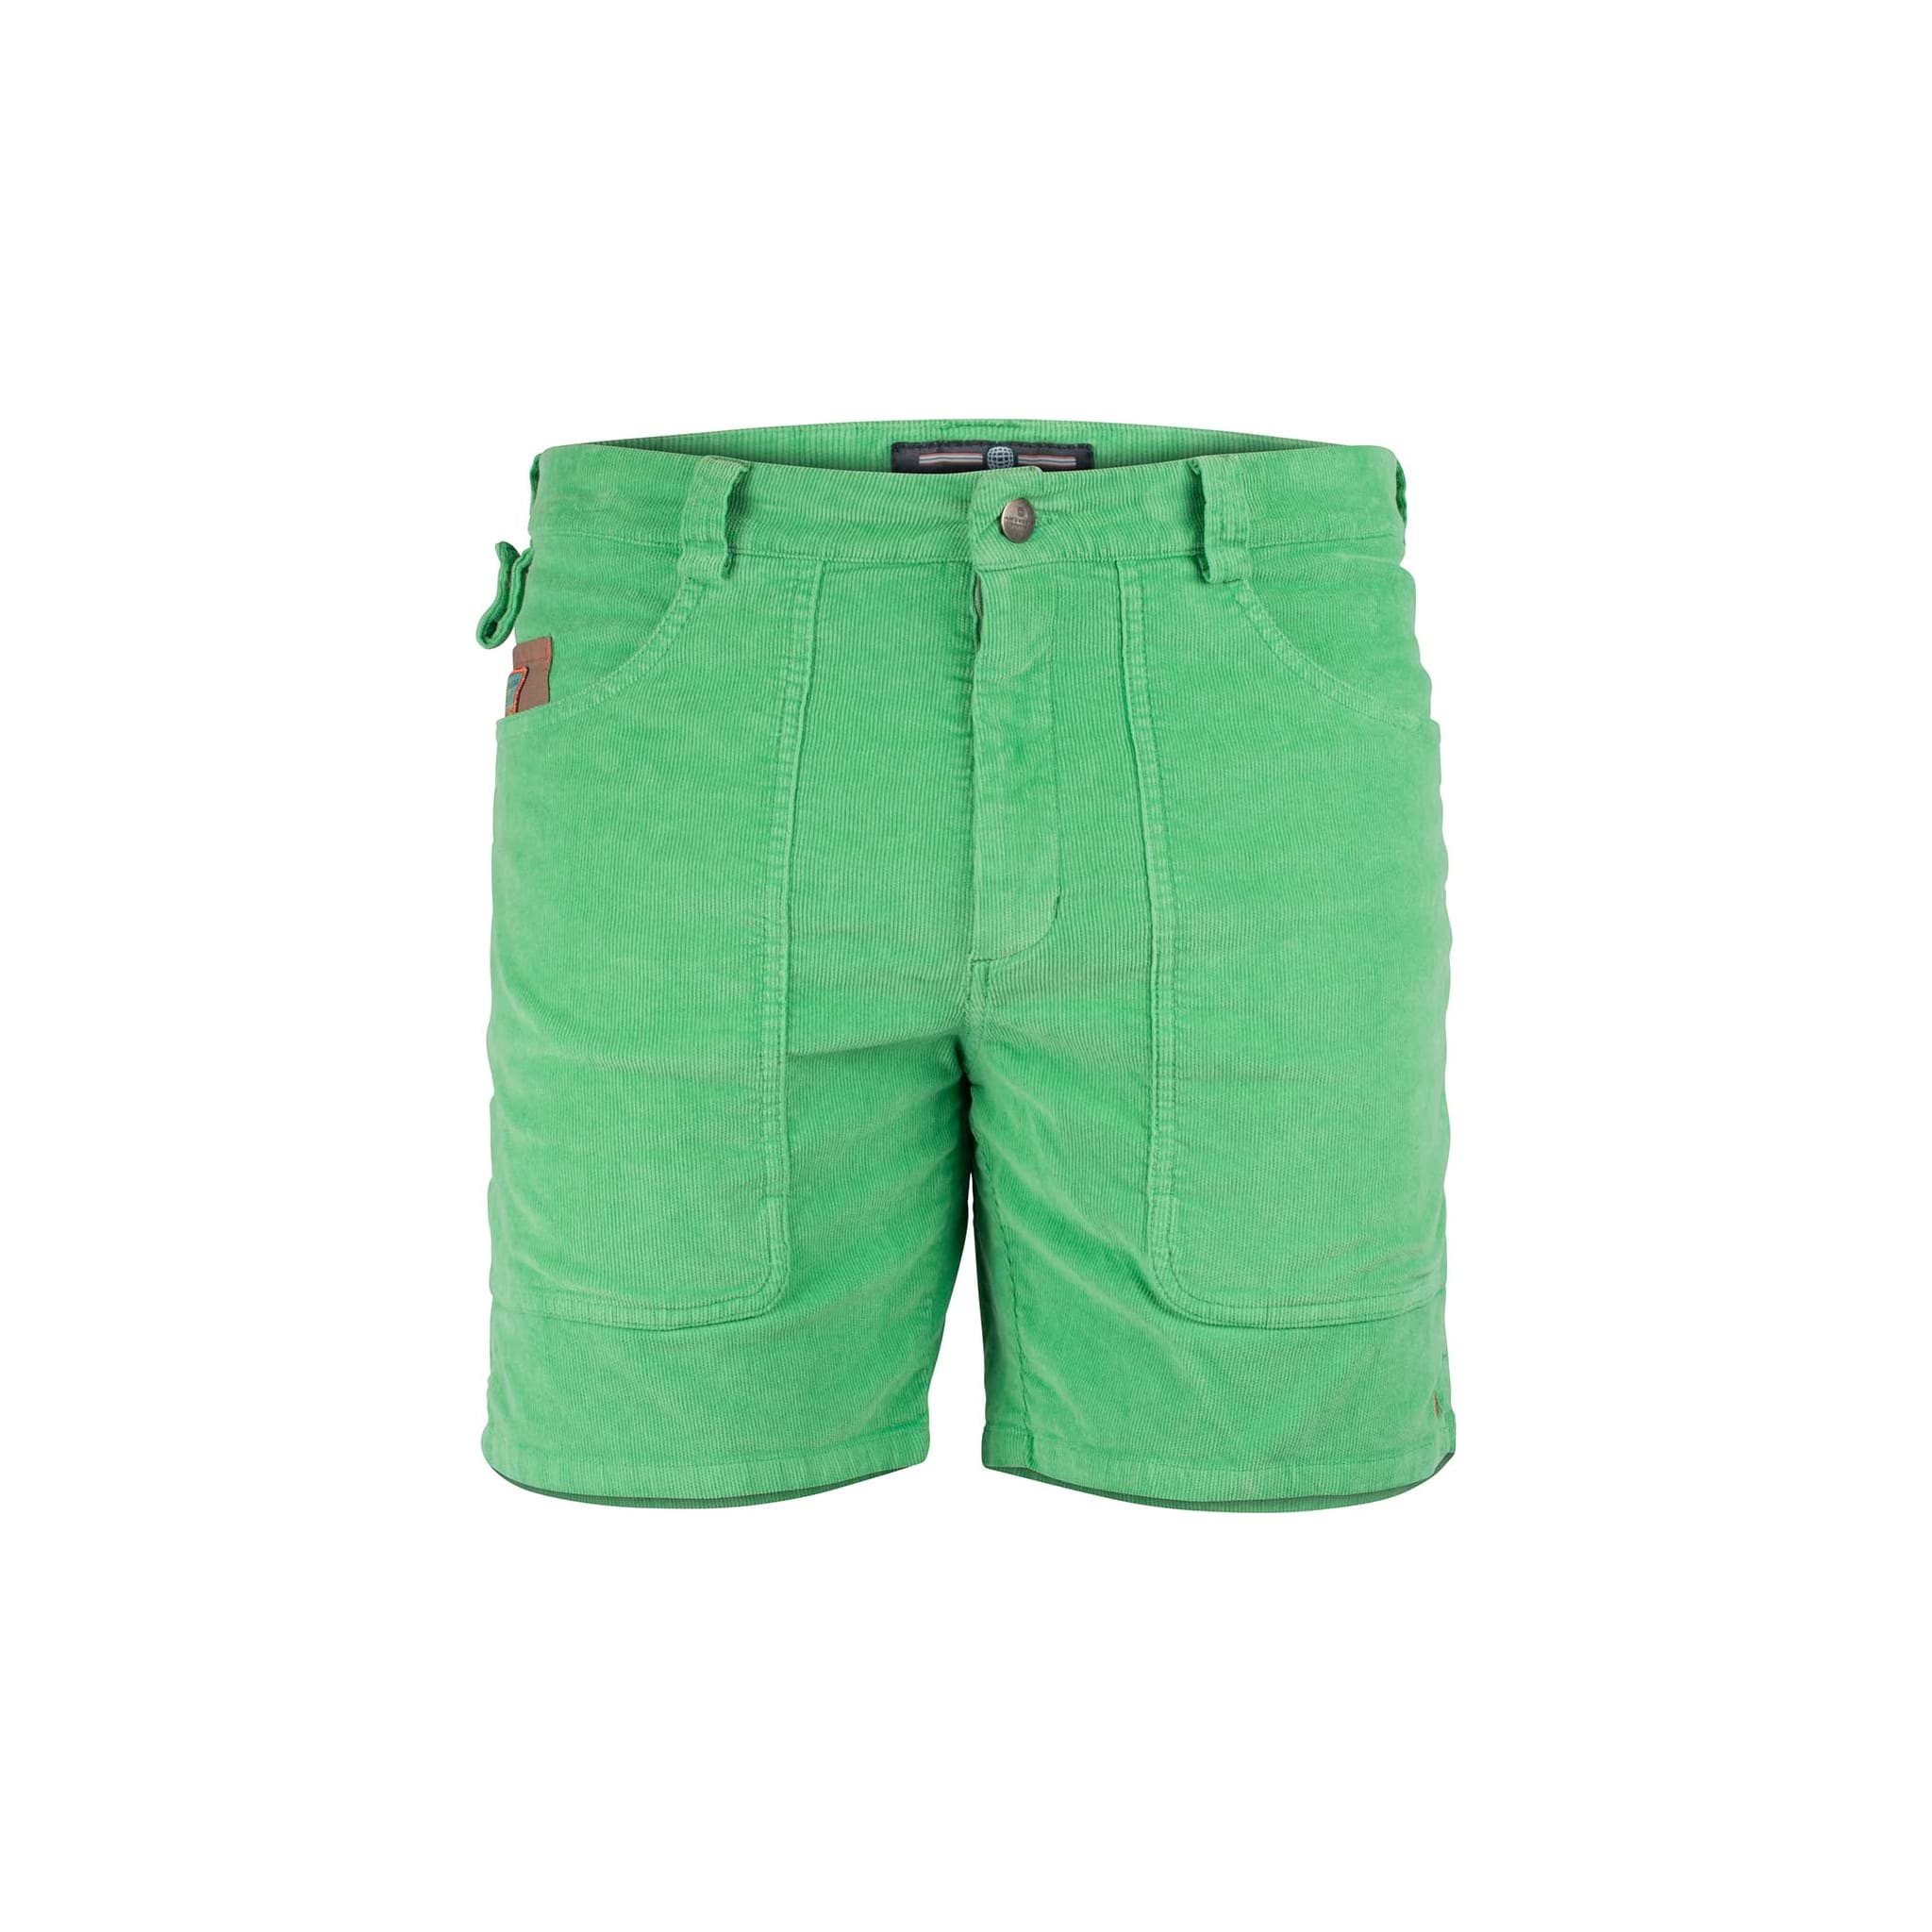 7 Incher Concord Garment Dyed Mens